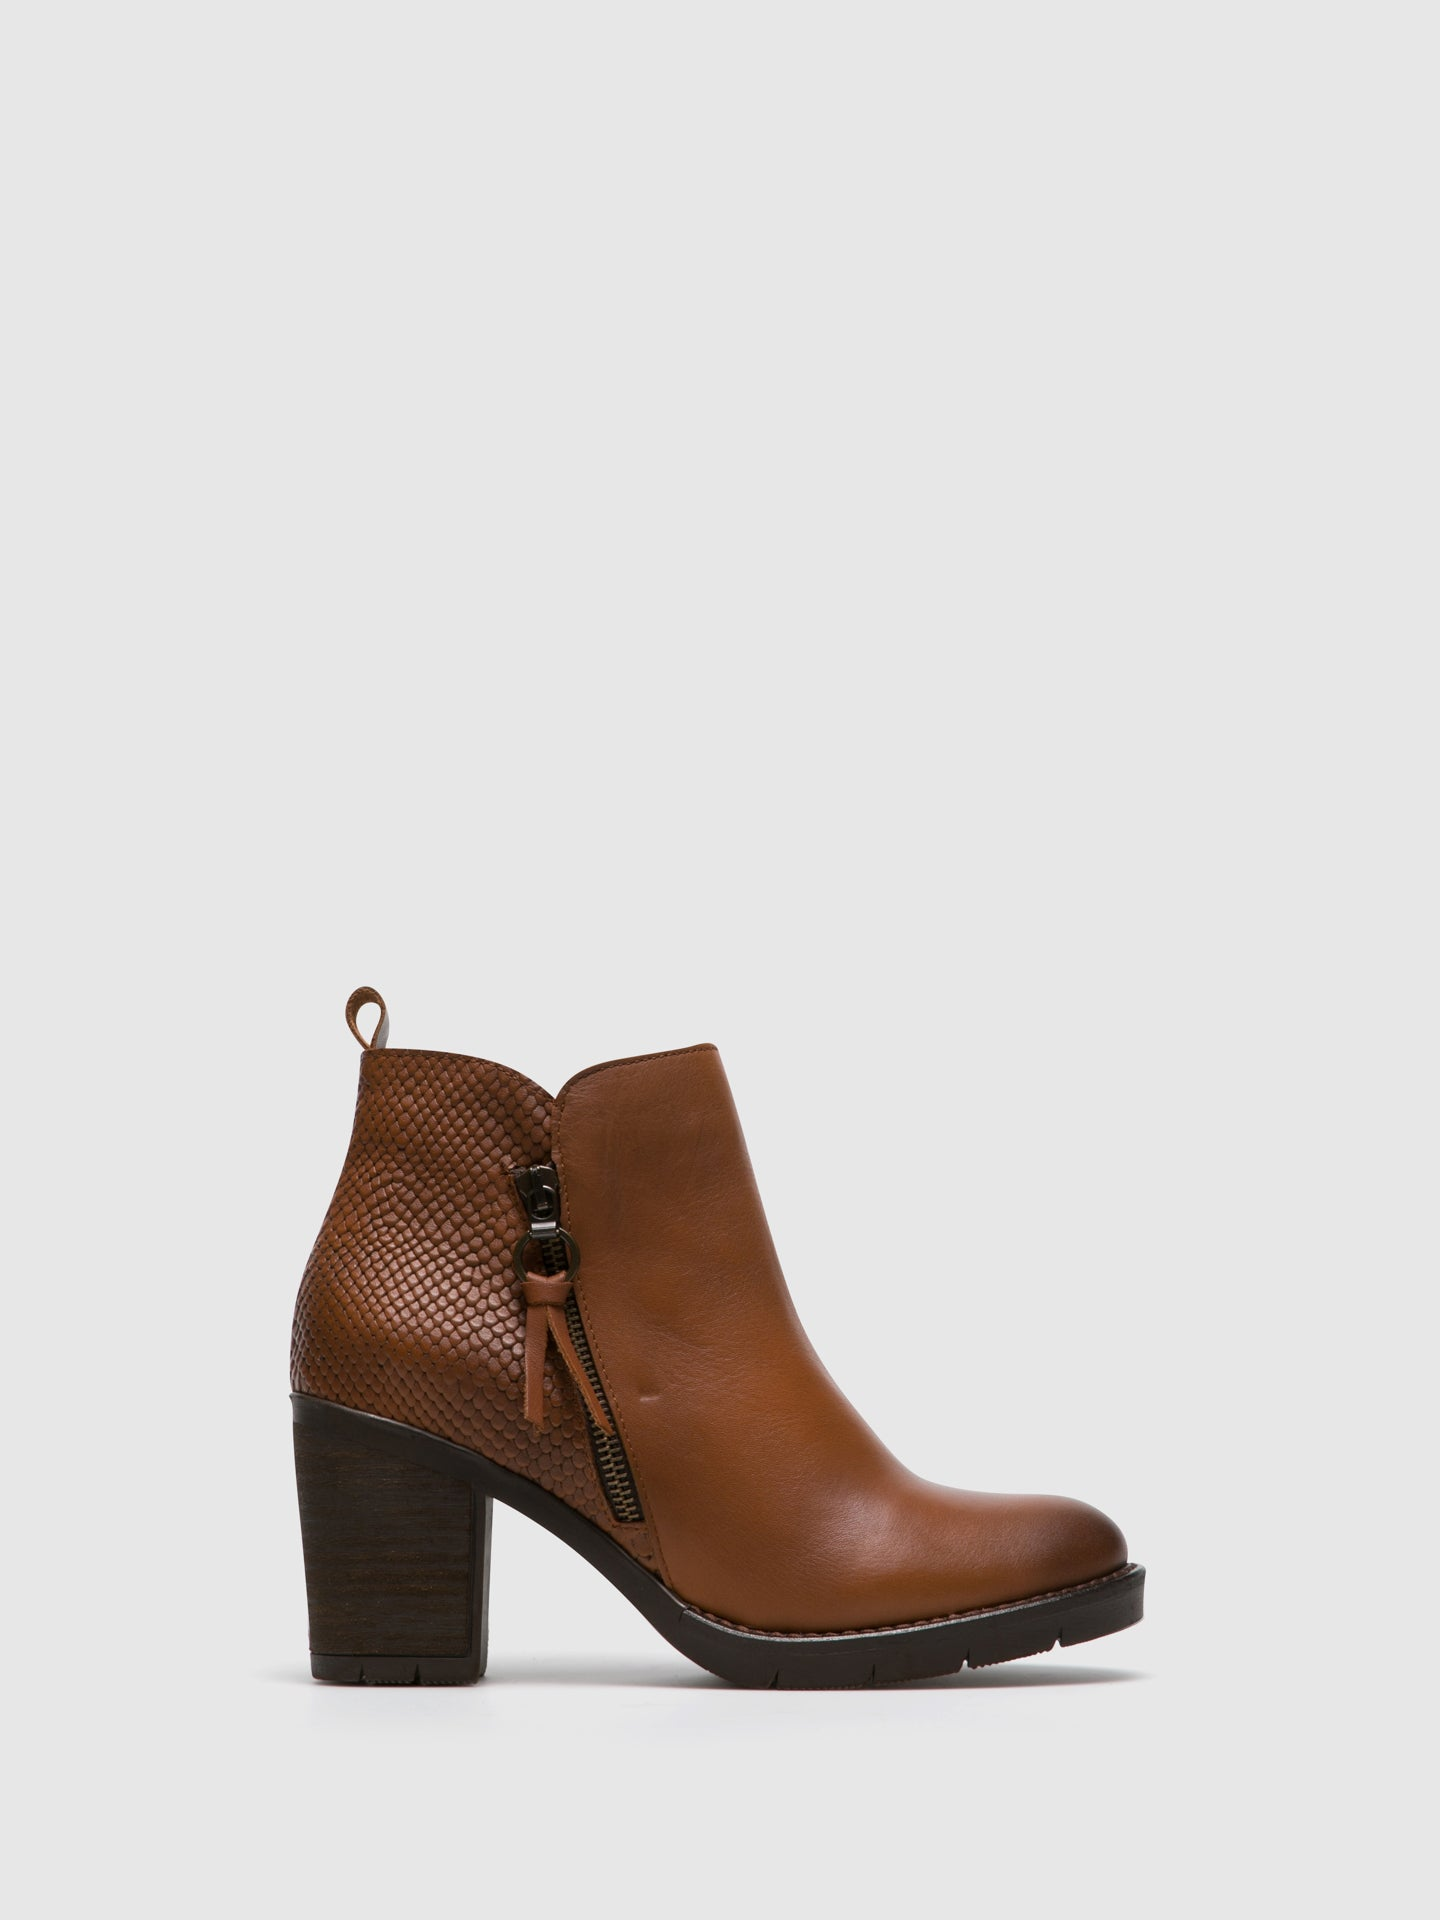 Foreva Peru Zip up Ankle Boots